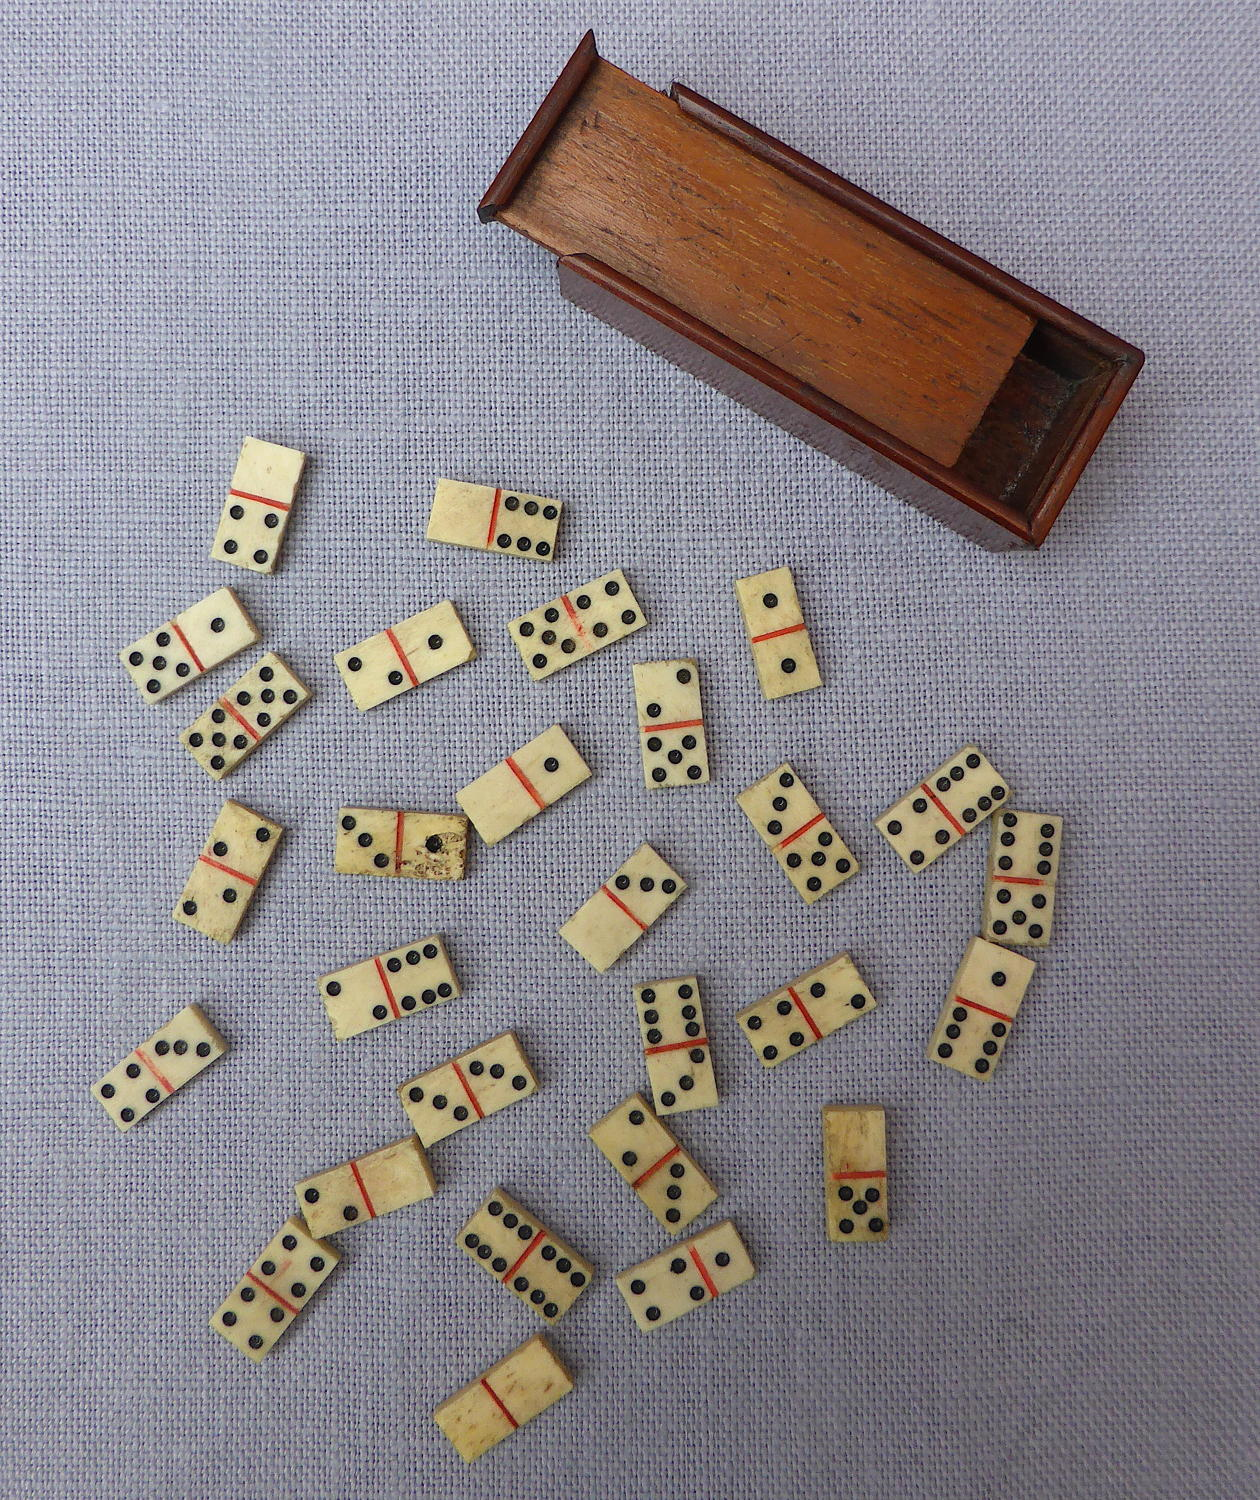 Napoleonic prisoner of war miniature bone domino set